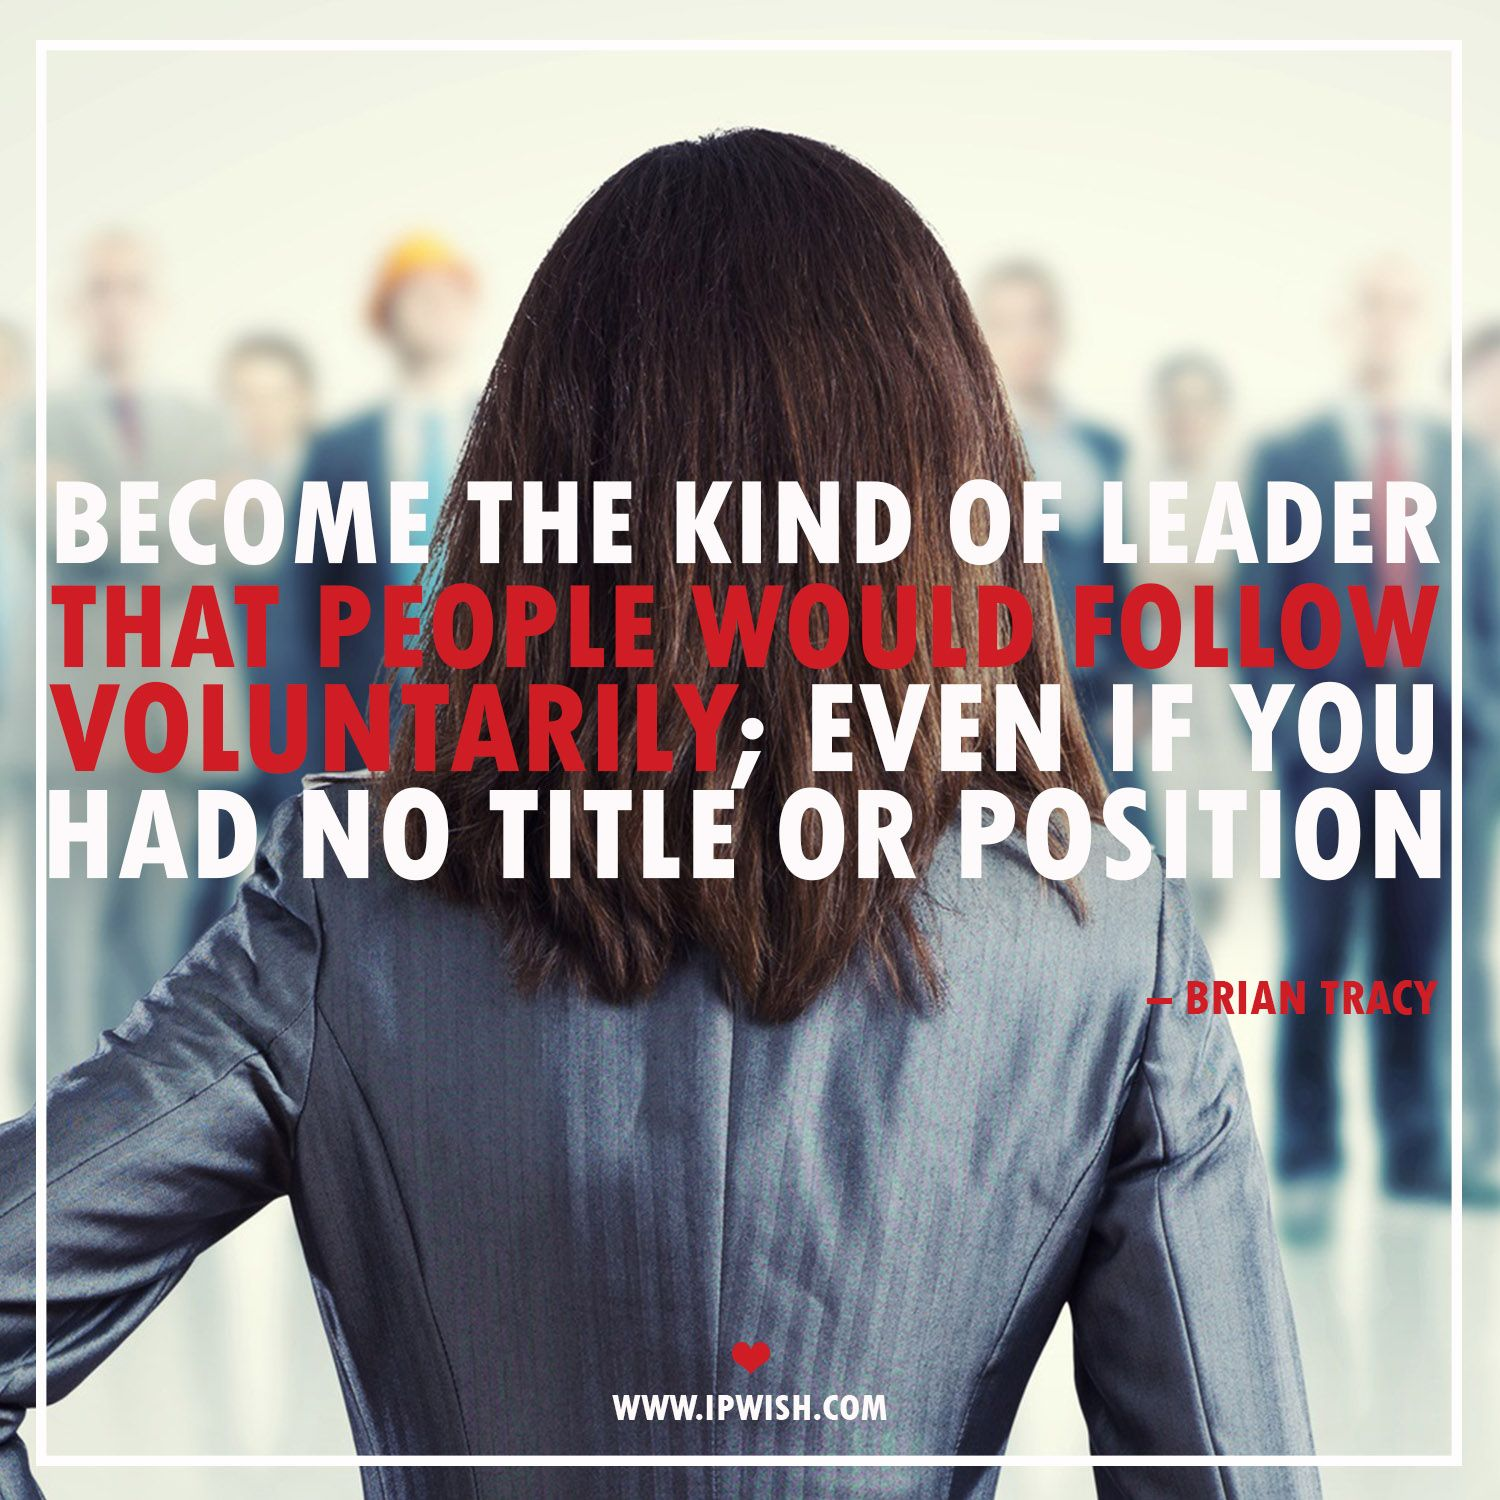 Become The Kind Of Leader That People Would Follow Voluntarily